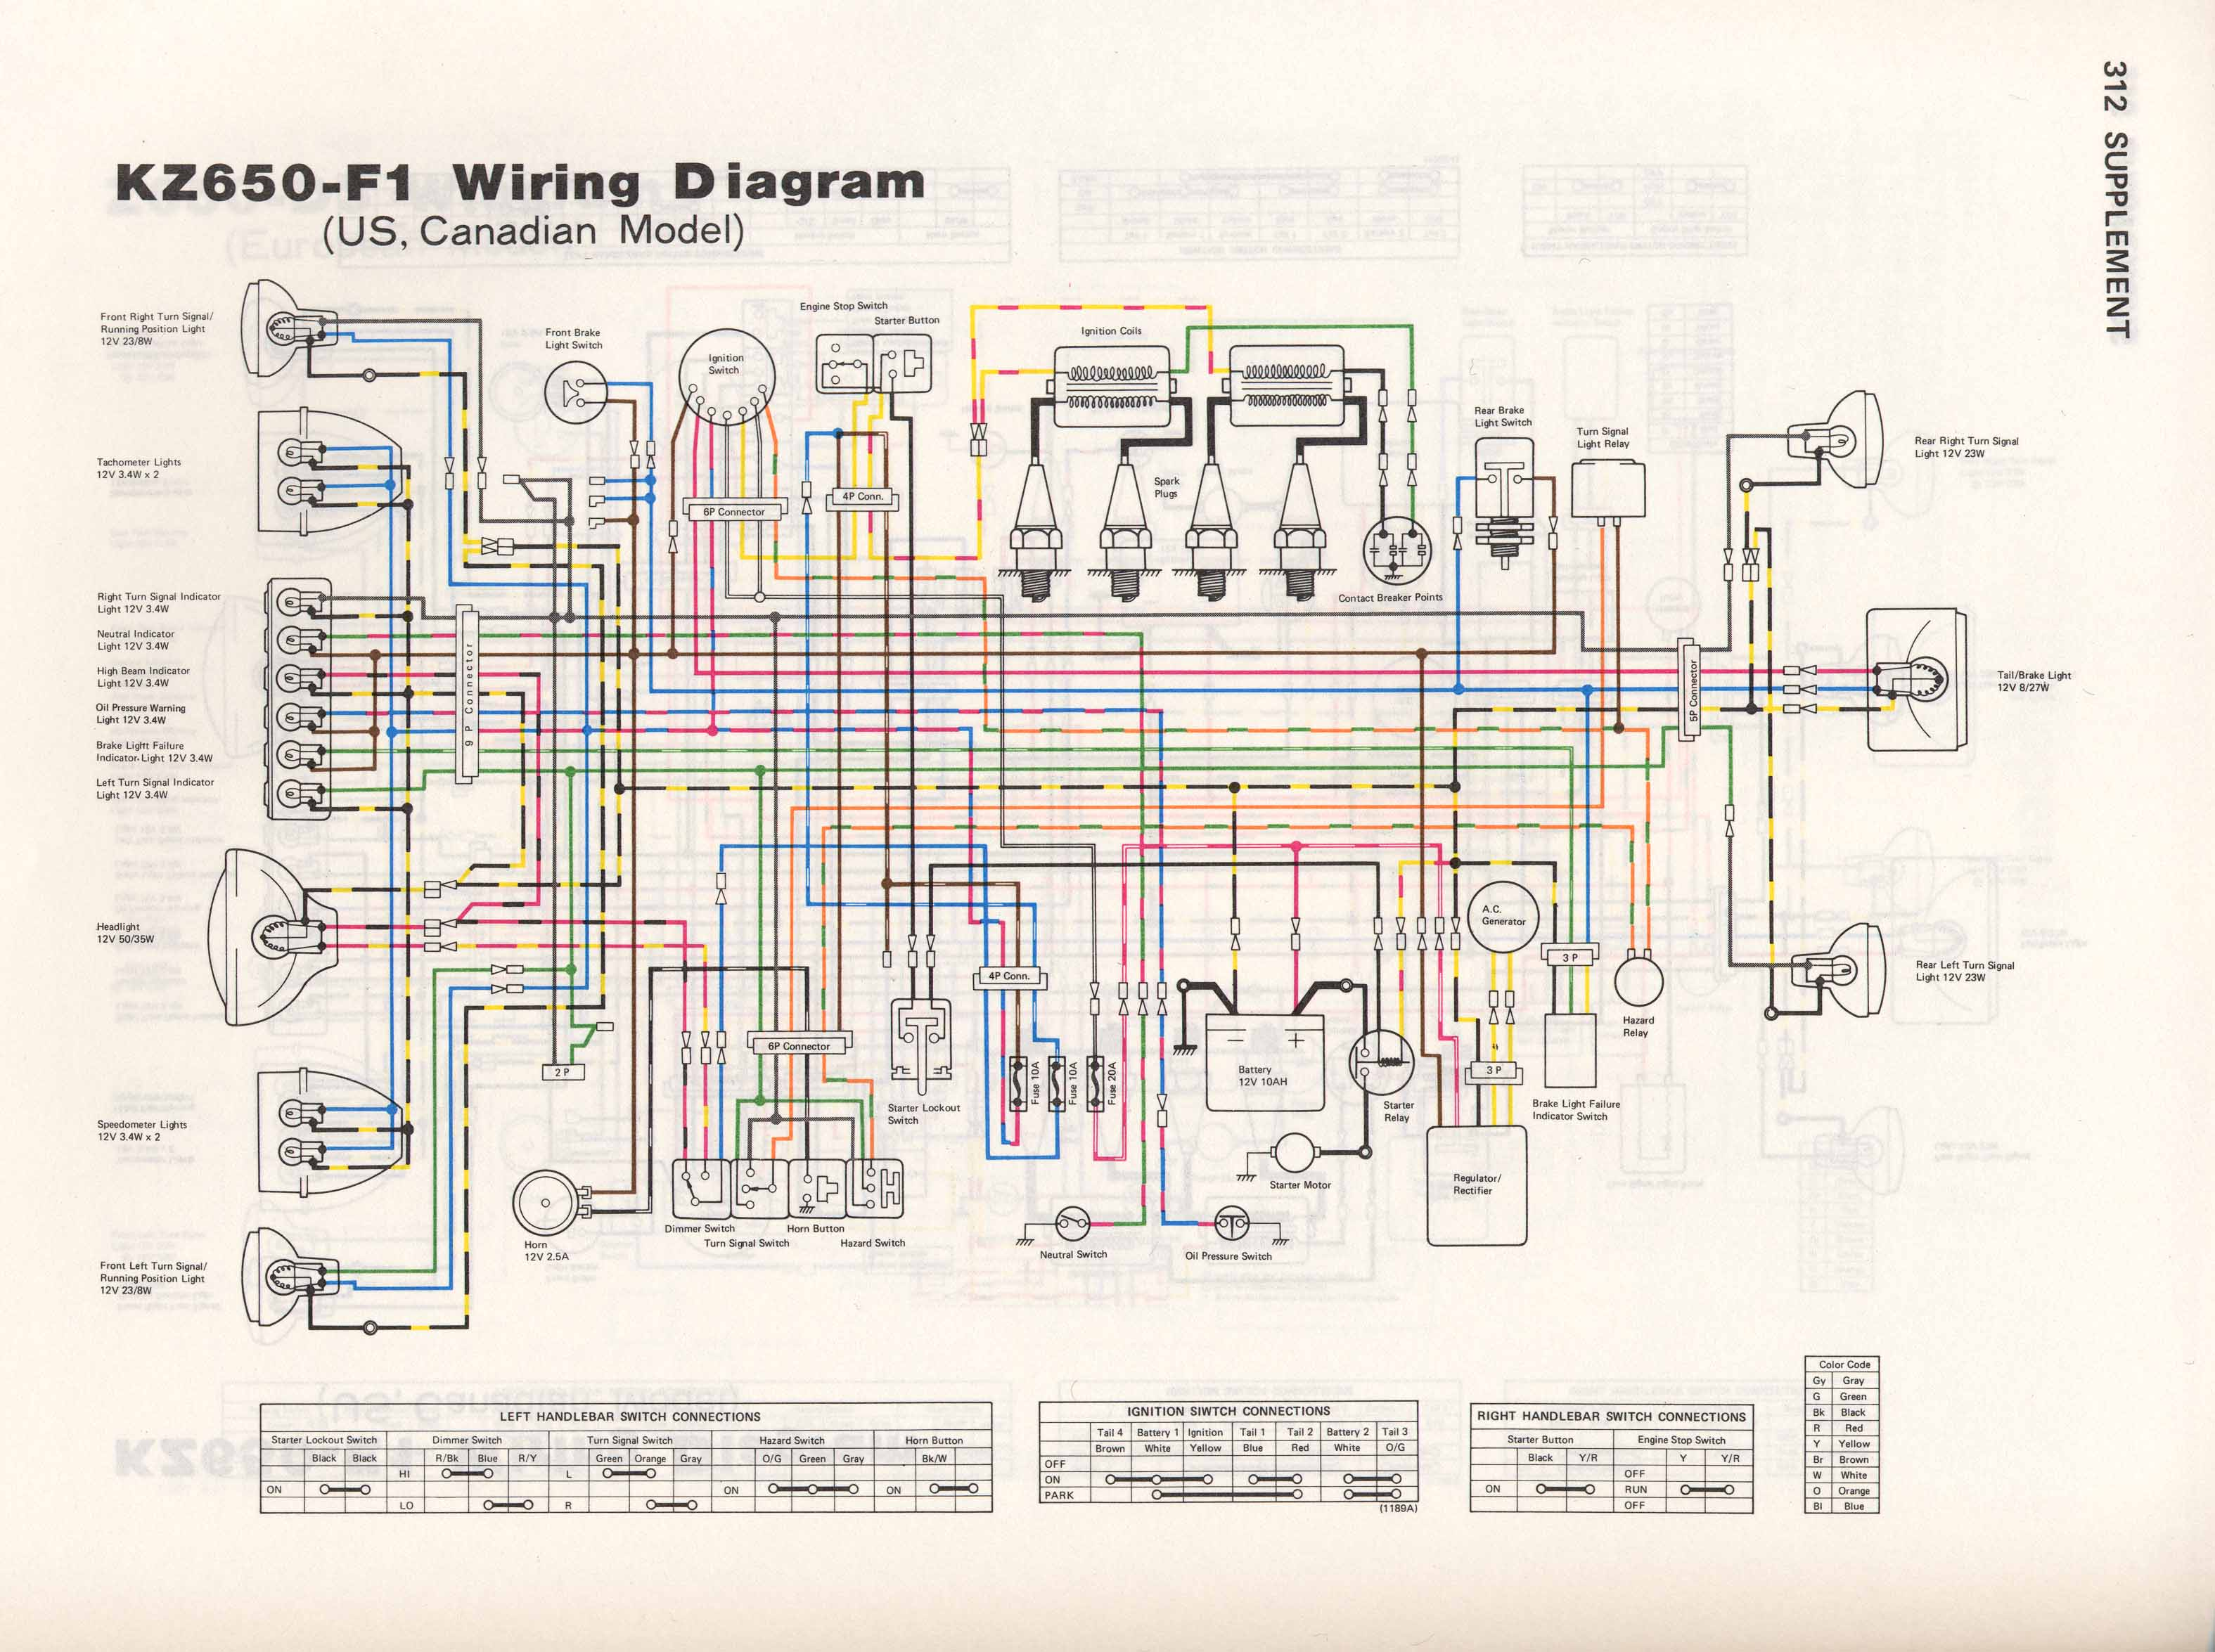 [SCHEMATICS_4UK]  Kawasaki Kz1000 Wiring Diagram - 2005 Pontiac G6 Gt Fuse Box Diagram for Wiring  Diagram Schematics | Kawasaki 250 Ltd Wiring Diagram |  | Wiring Diagram Schematics